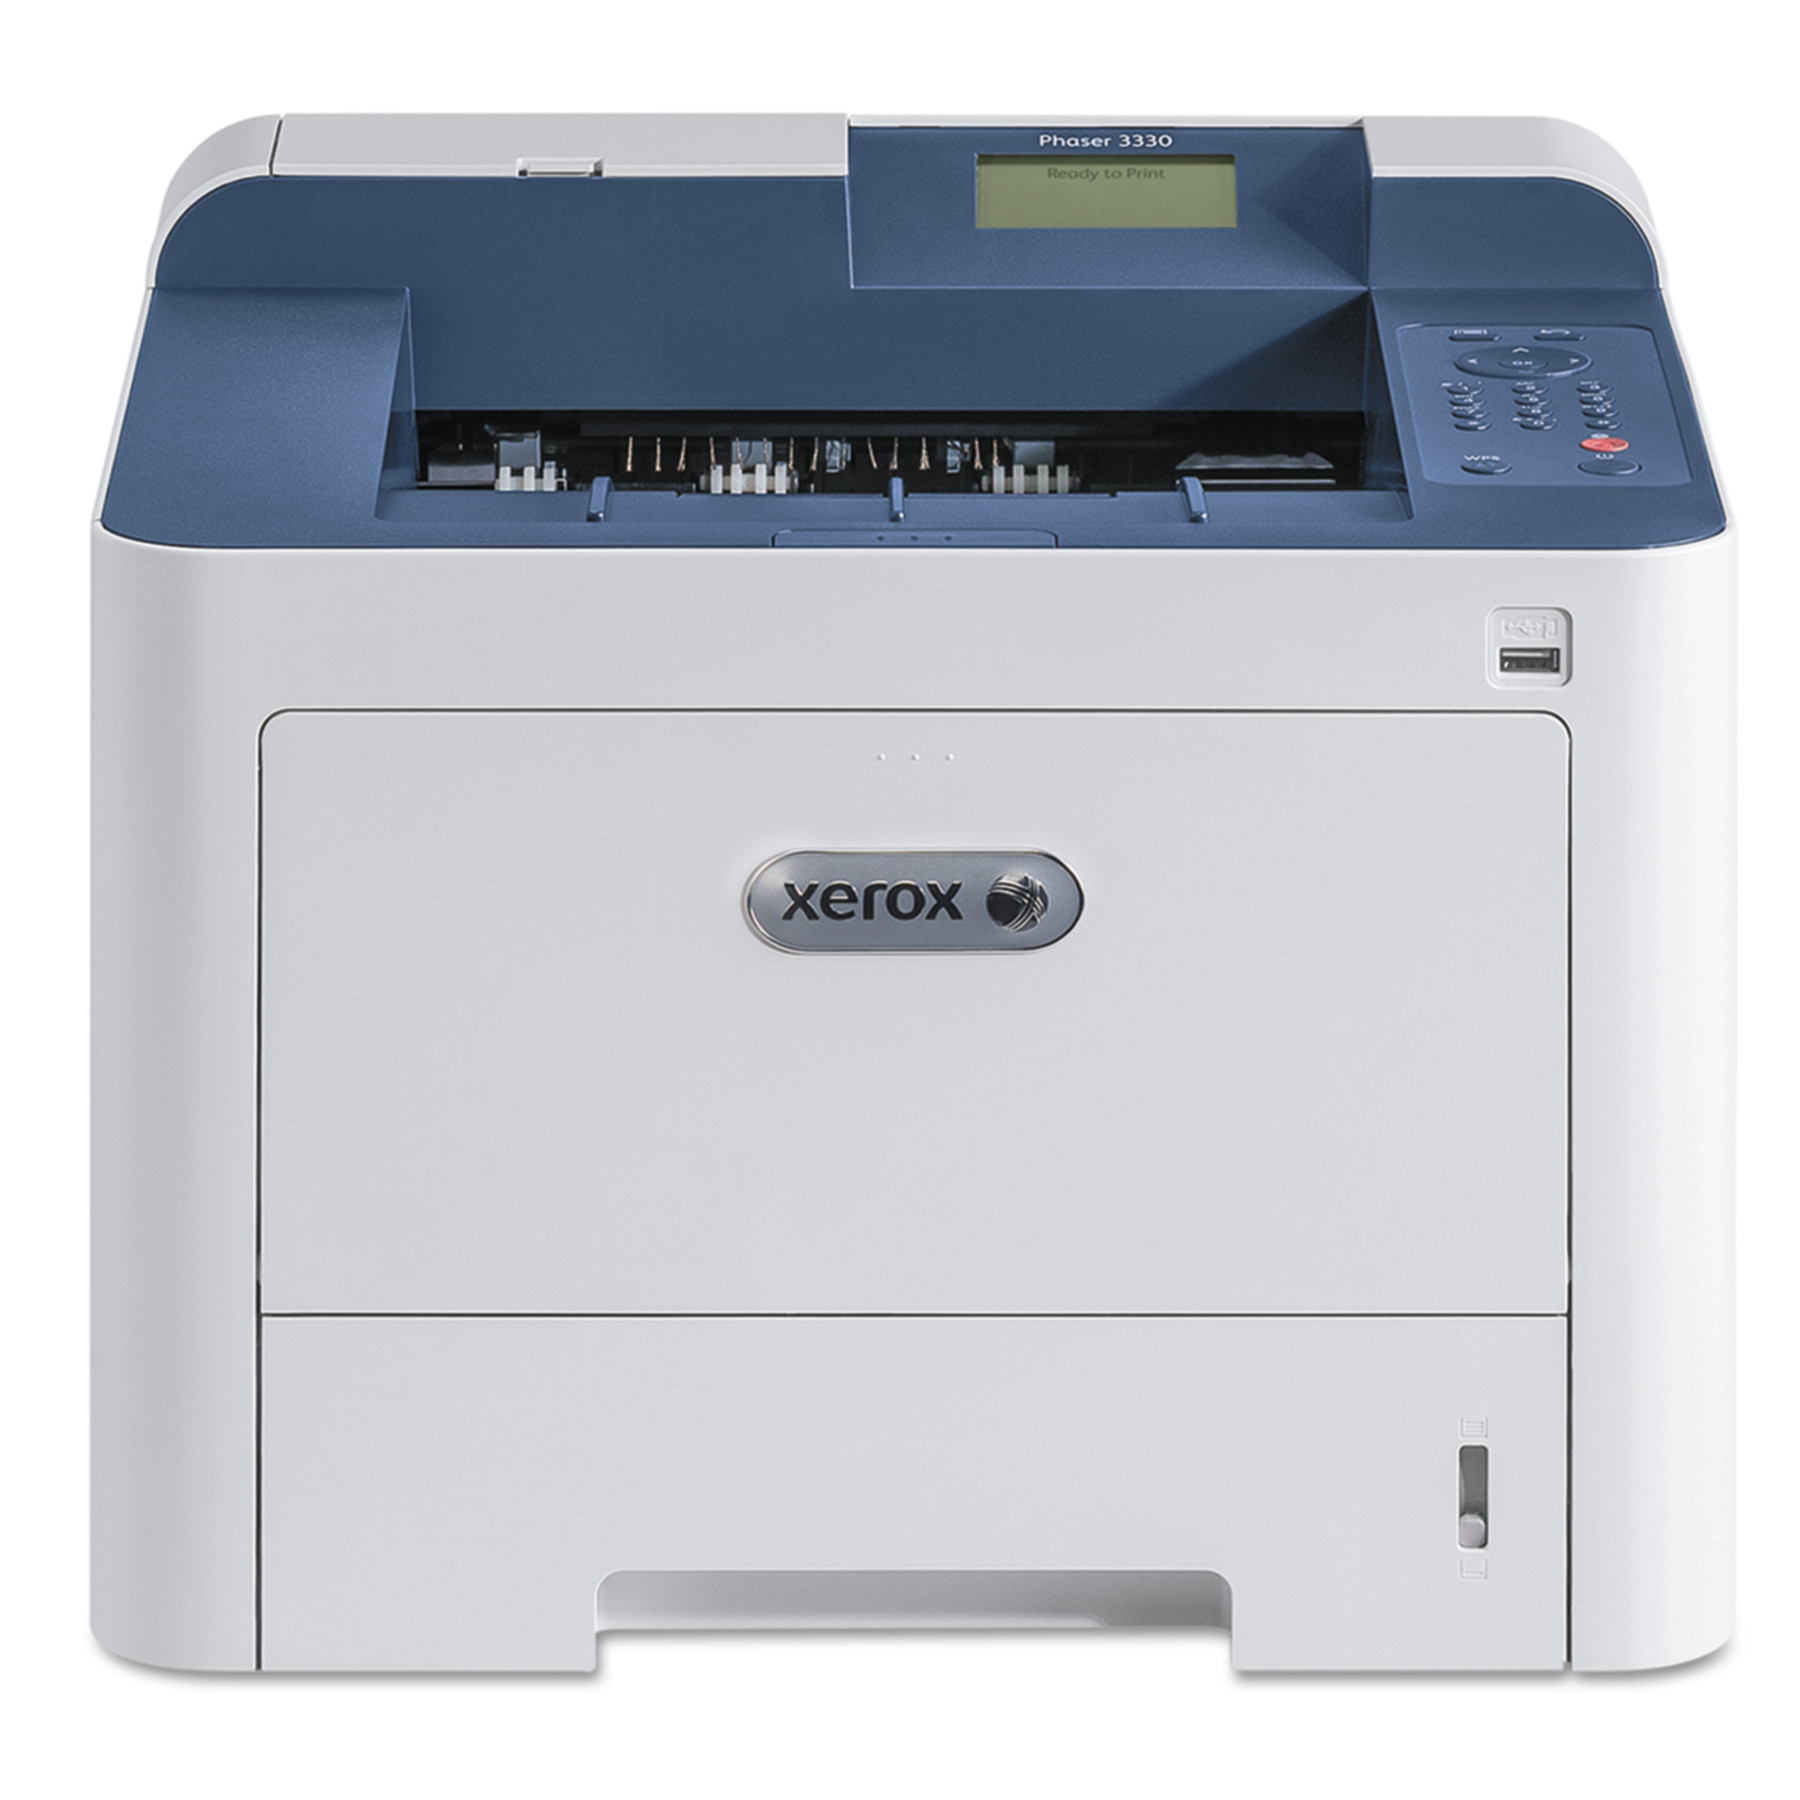 Xerox Phaser 3330 Monochrome Printer